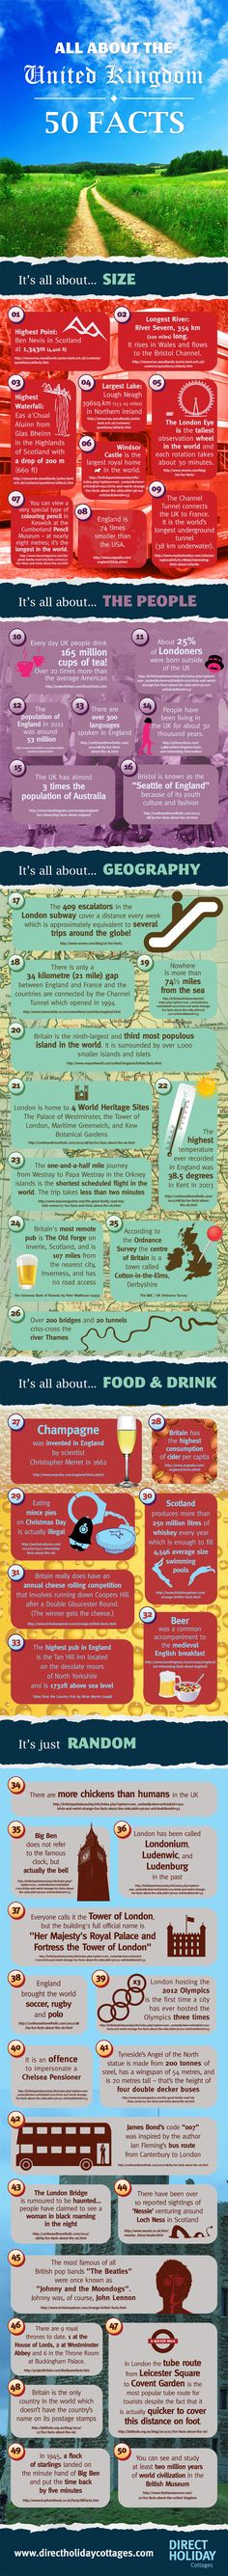 All About The United Kingdom 50 Facts  #Infographic #Travel #UnitedKingdom